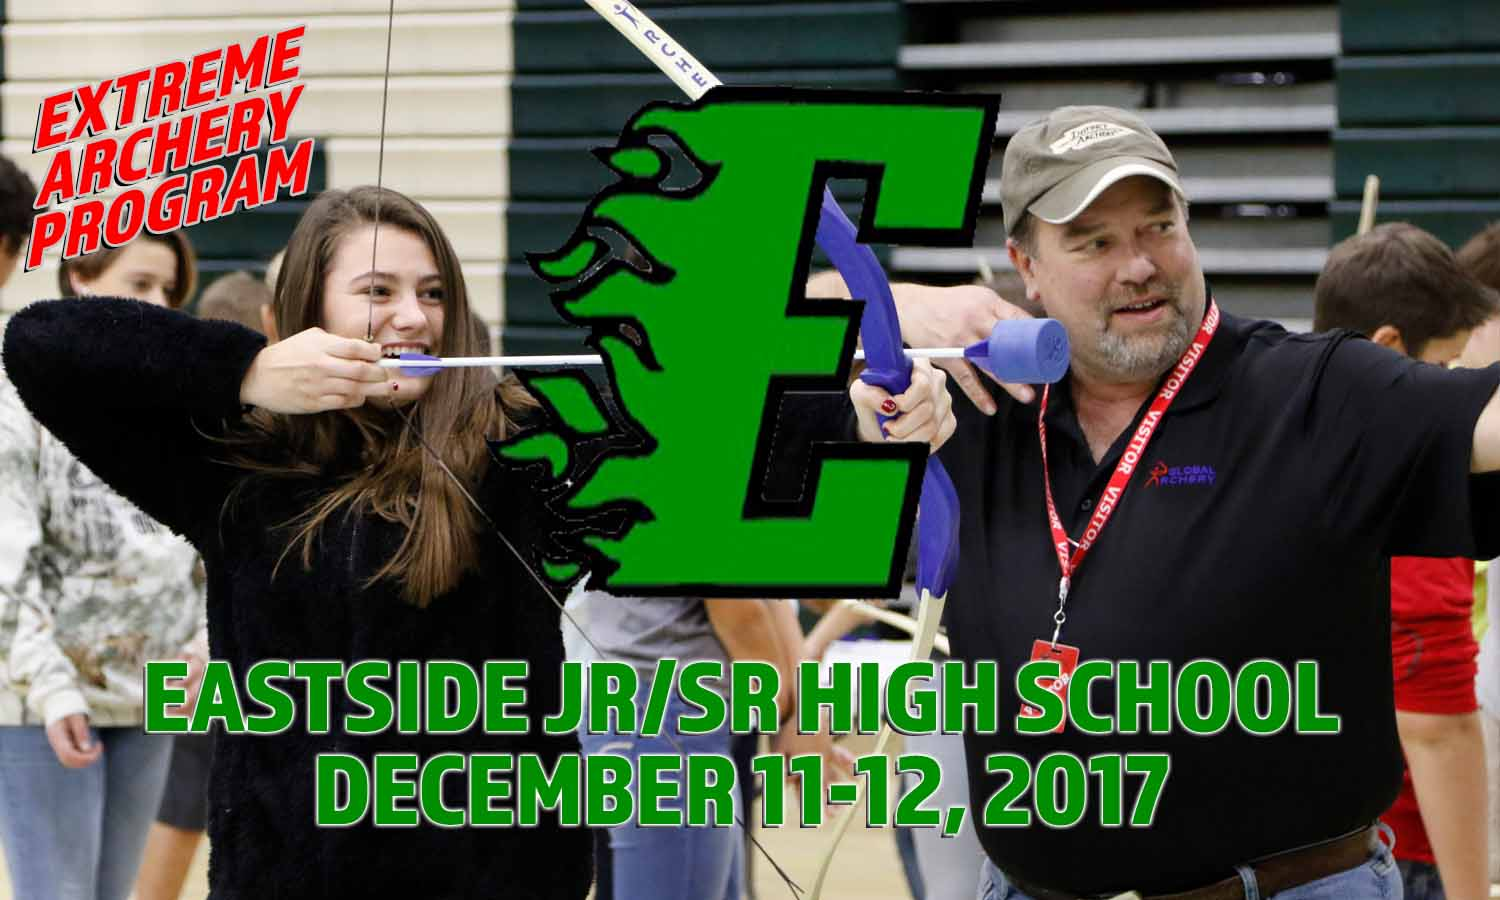 Eastside Jr/Sr High School Extreme Archery Program